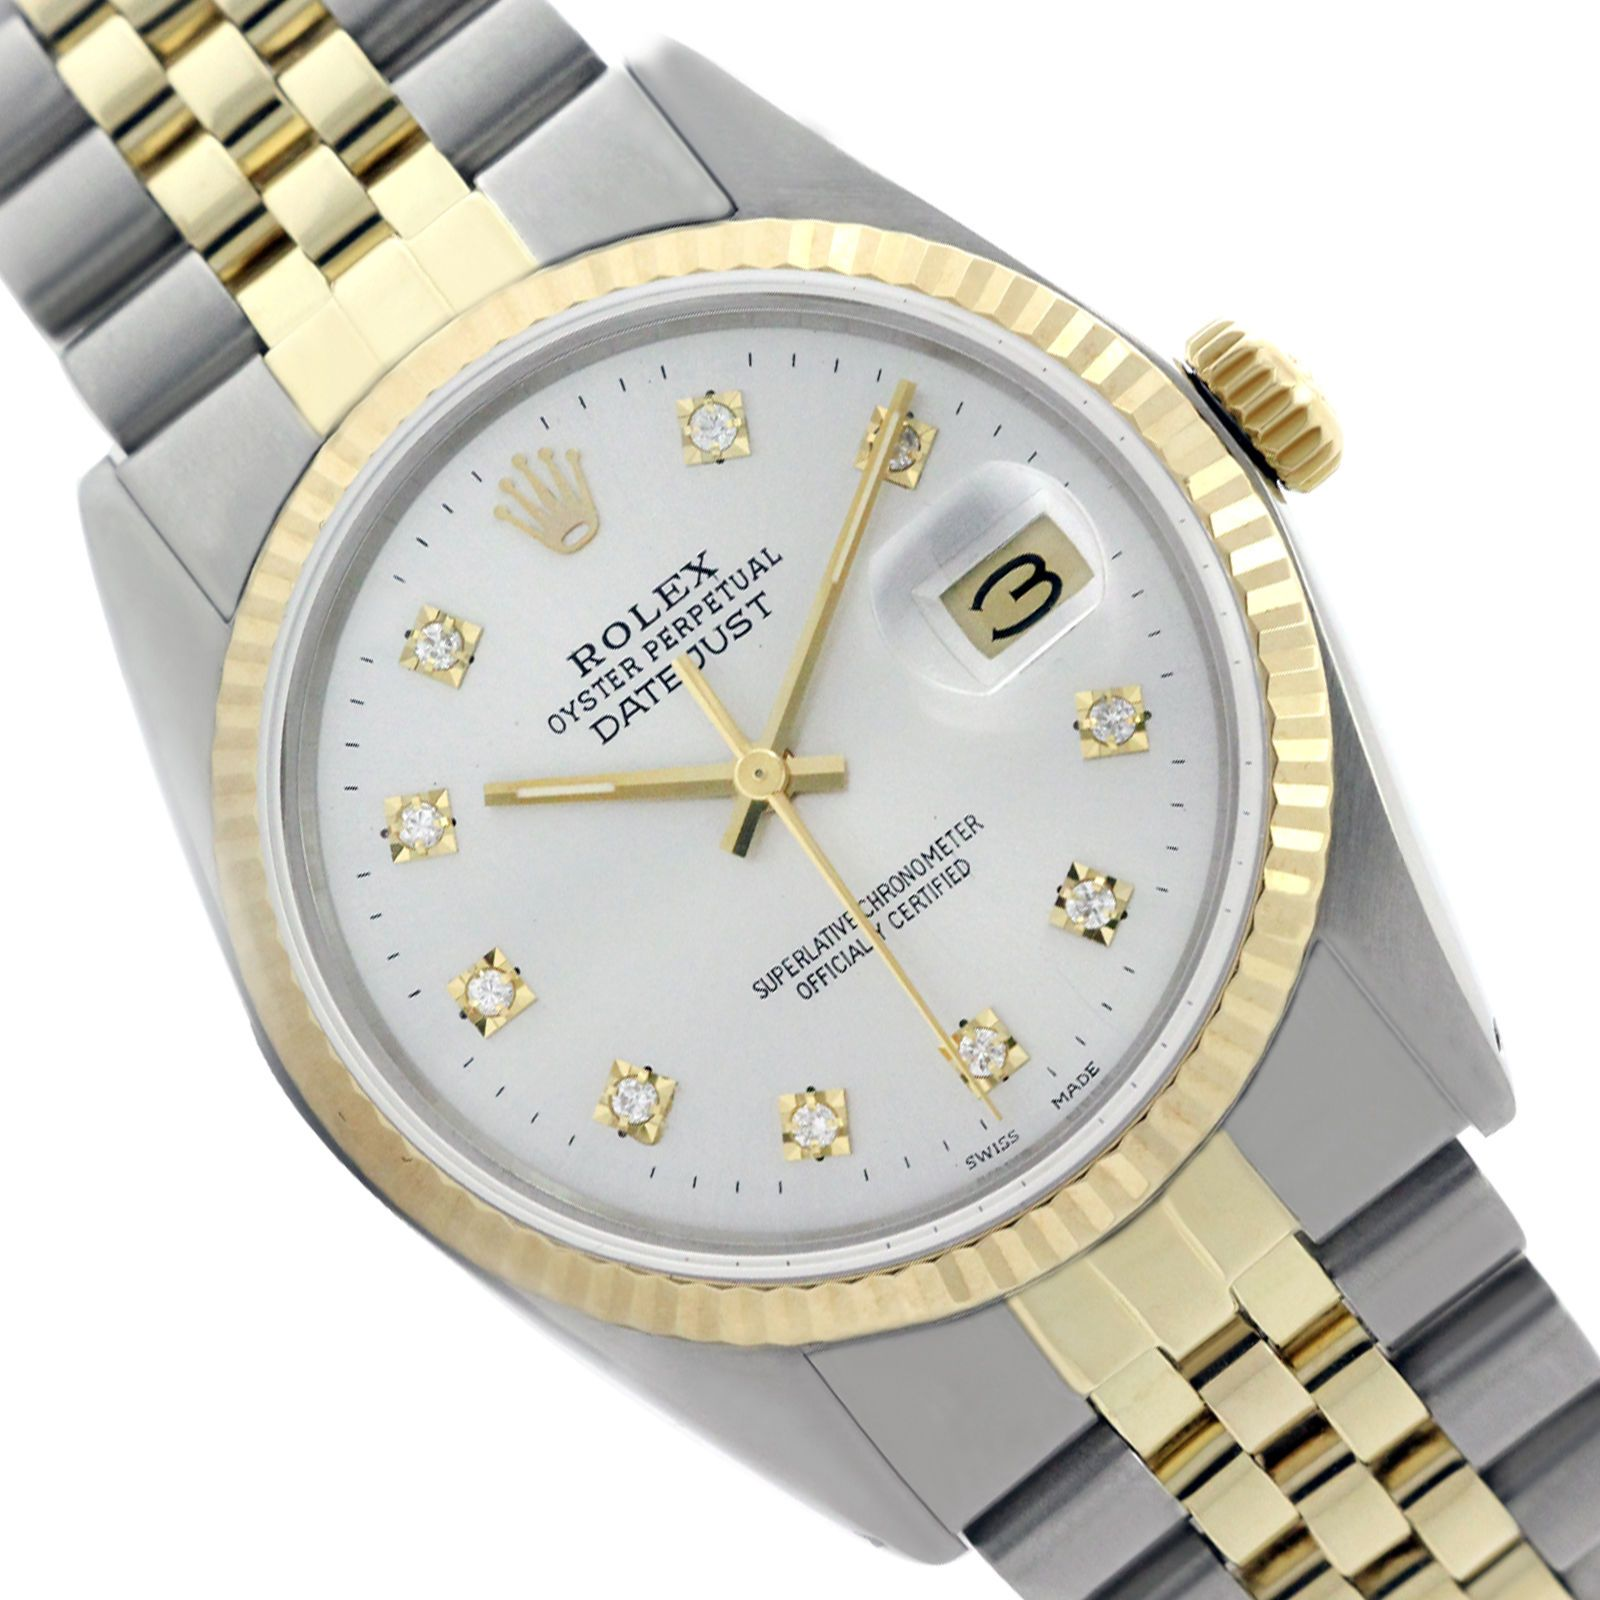 Preowned Fresh Vintage Rolex 36mm Watch 16013 Datejust Fluted Bezel 16013 White  https://t.co/yt5sng7AO2 https://t.co/d9fifwYnE0